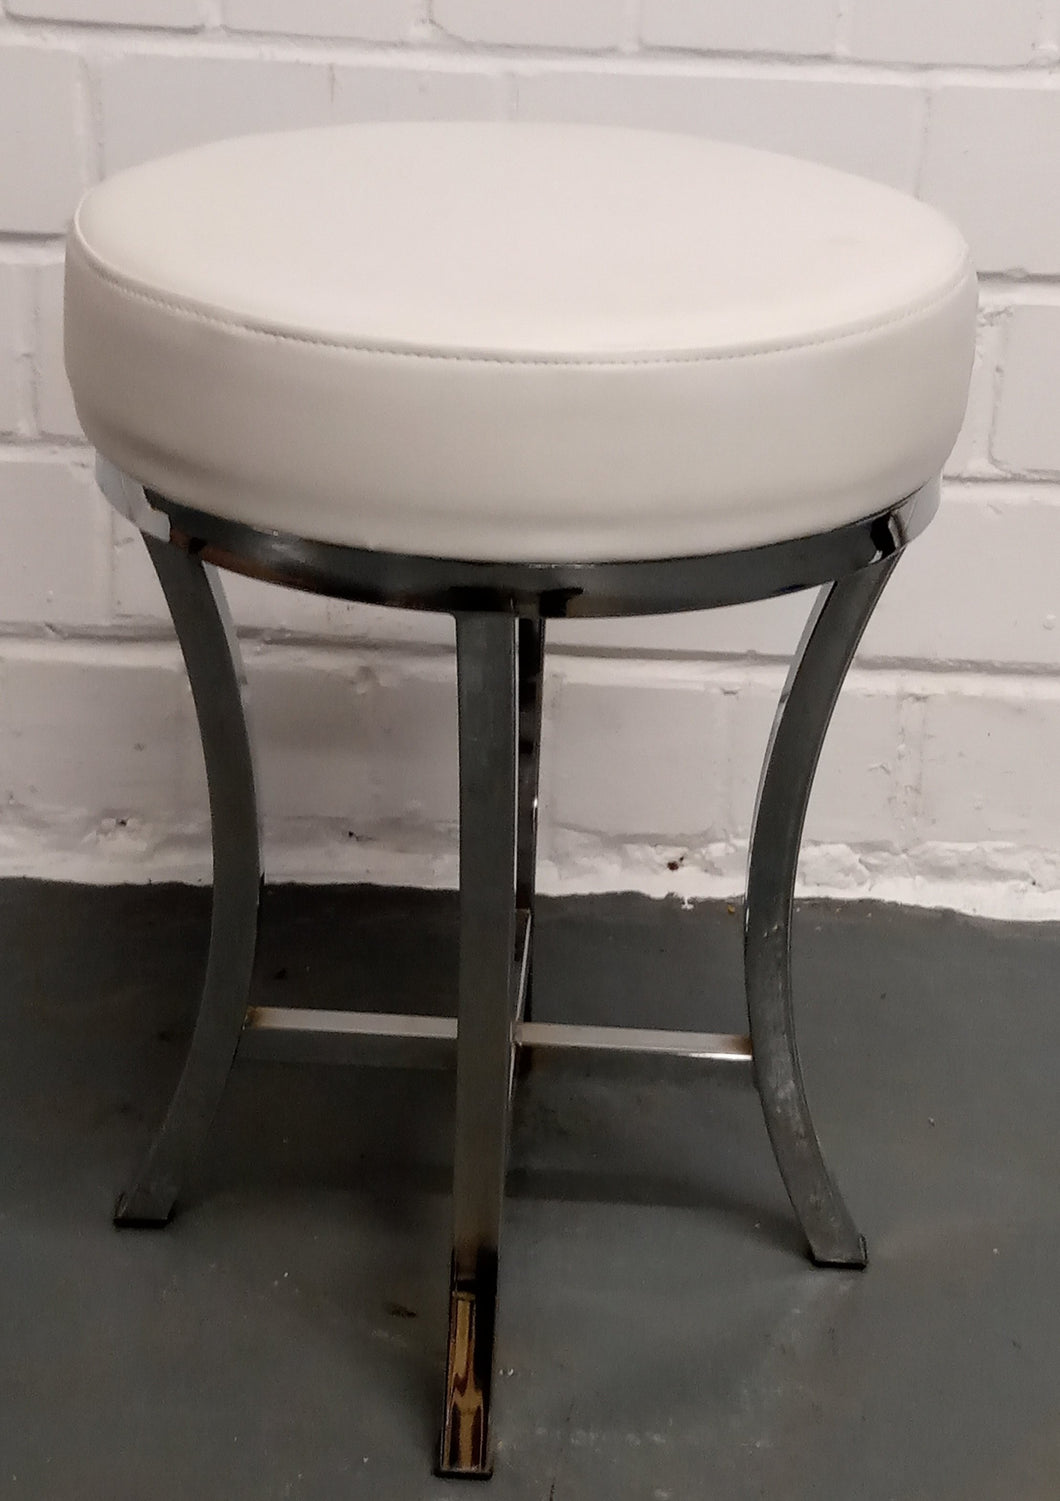 Faux Leather Upholstered Low Round Accent Stool With Metal Legs, White & Chrome - 185728